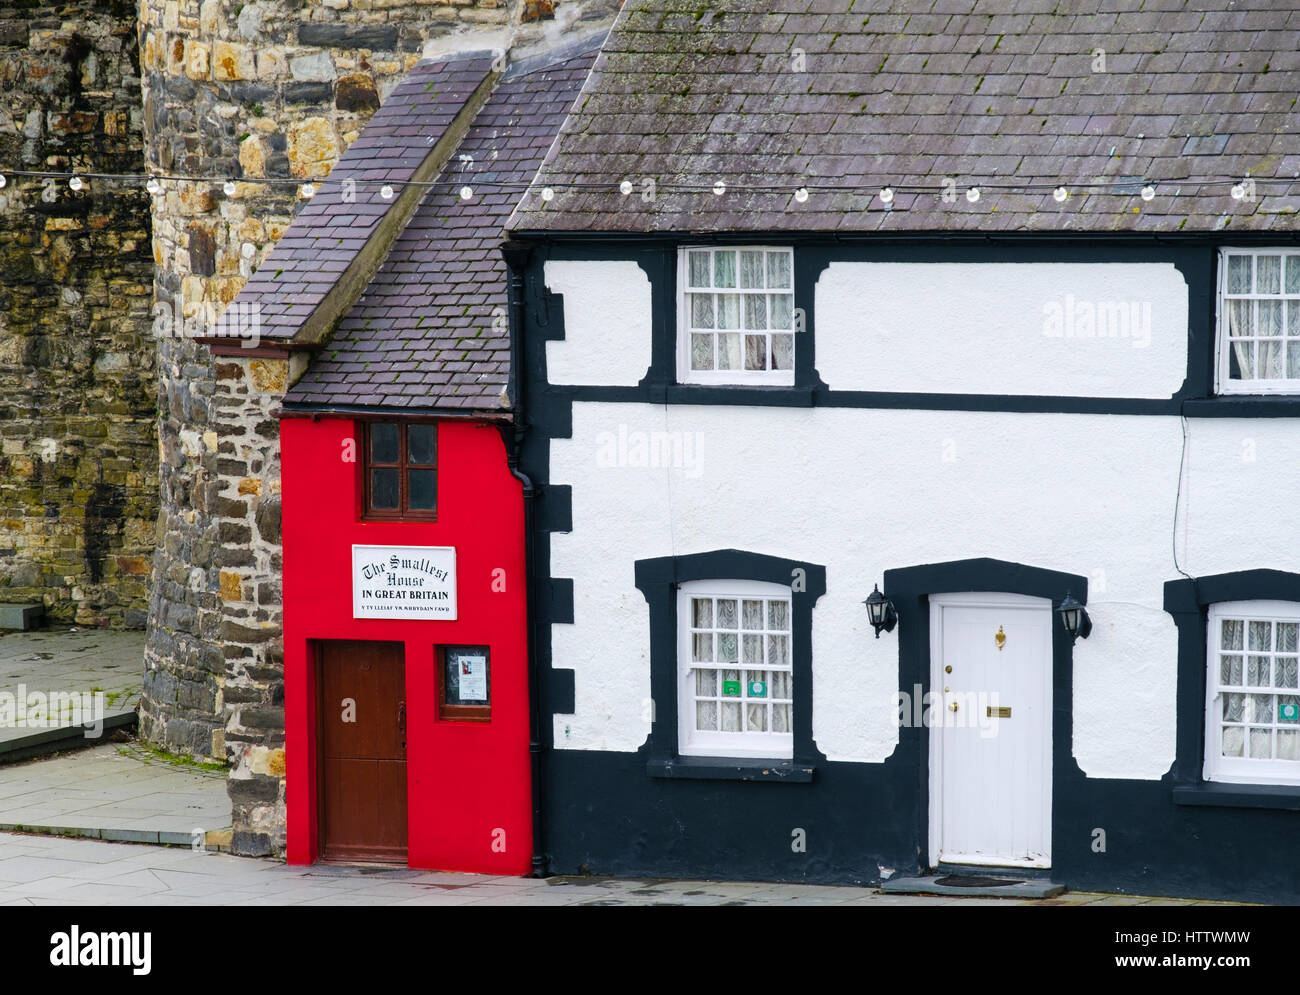 Small red Quay House is the Smallest House in Great Britain by the town walls on the quayside in Conwy, Wales, UK, - Stock Image